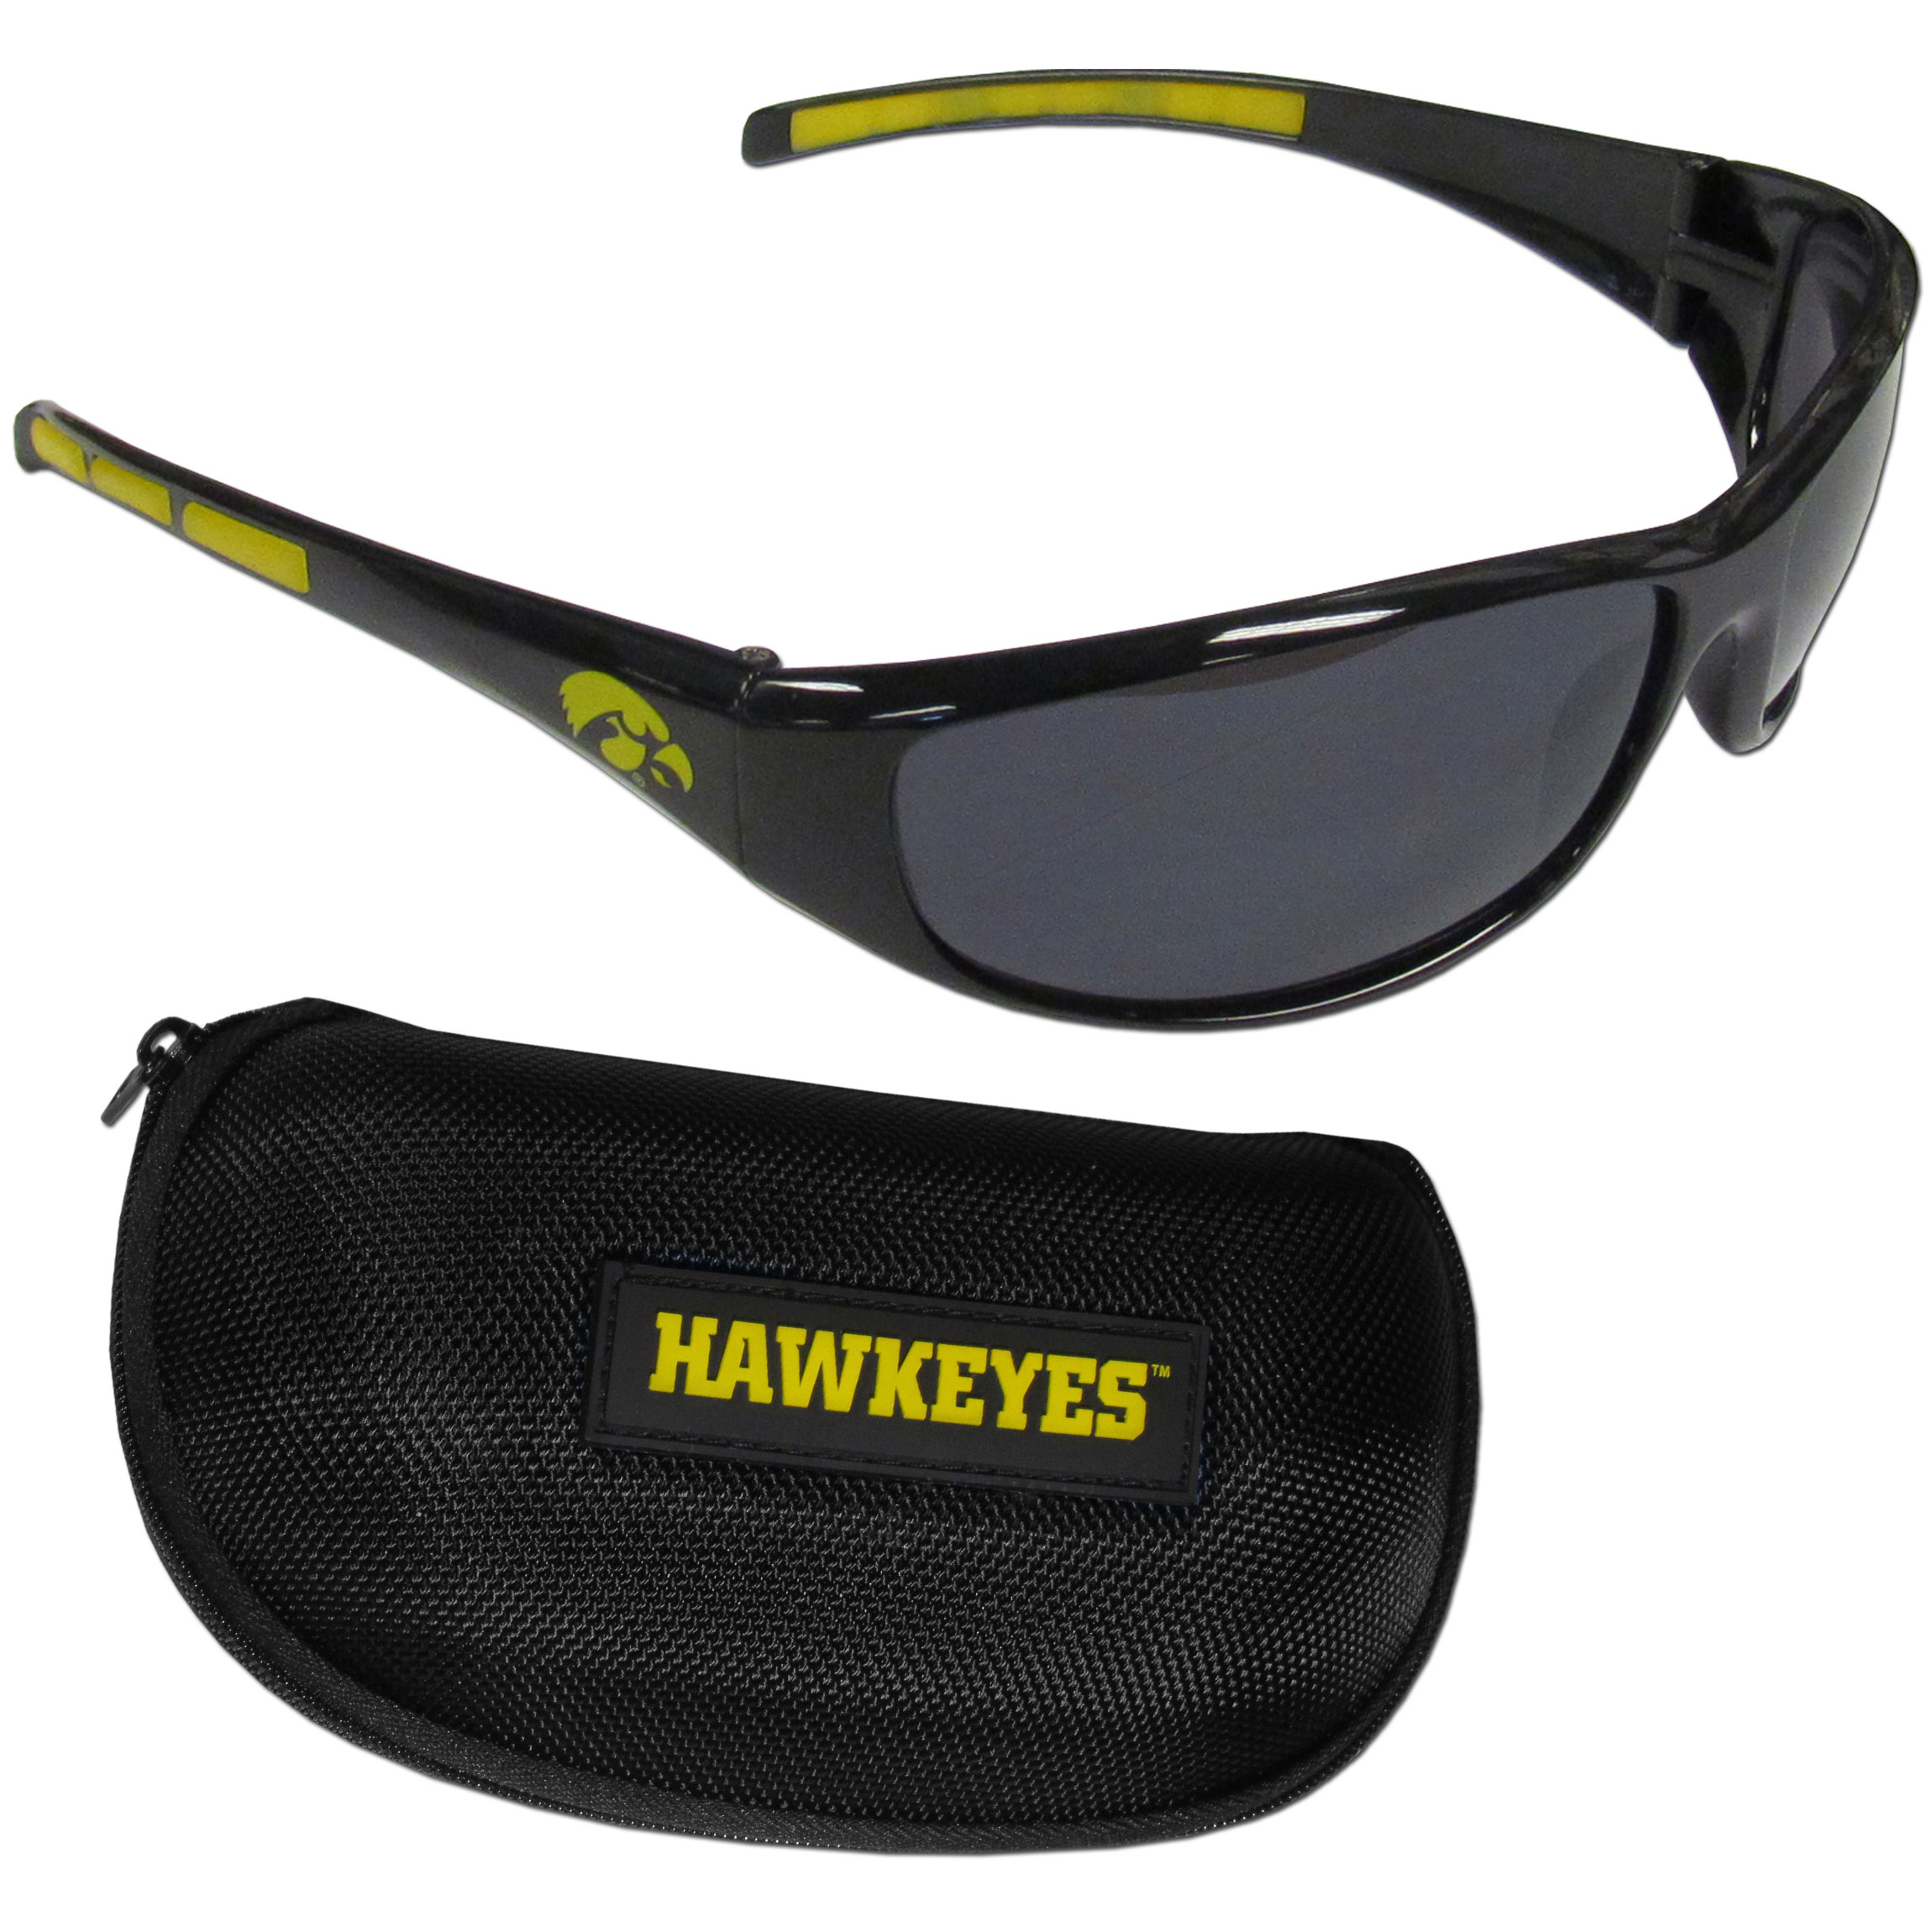 Iowa Hawkeyes Wrap Sunglass and Case Set - This great set includes a high quality pair of Iowa Hawkeyes wrap sunglasses and hard carrying case.